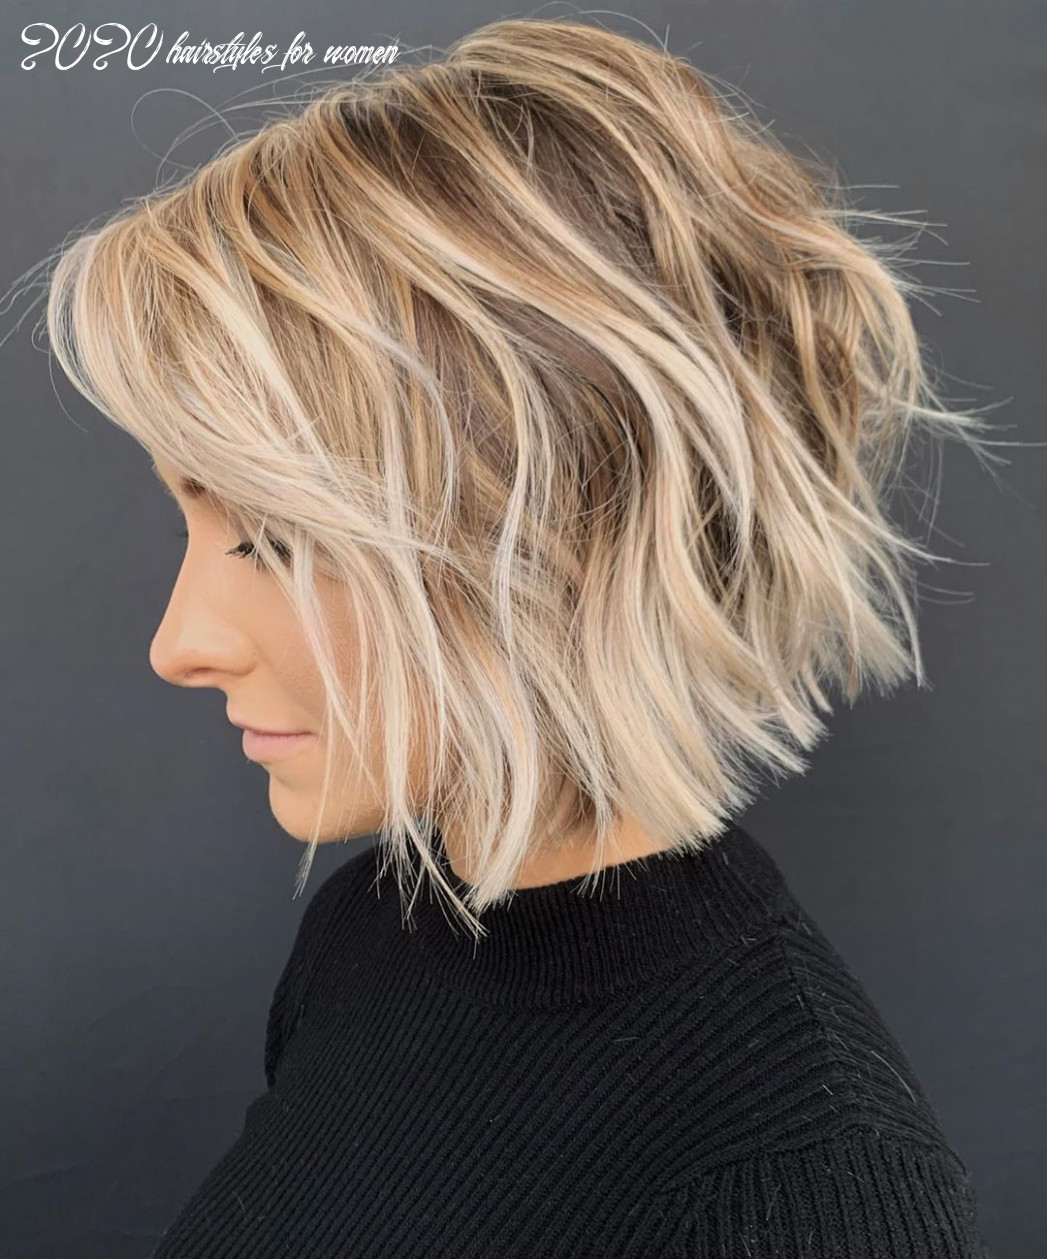 10 newest haircut ideas and haircut trends for 10 hair adviser 2020 hairstyles for women